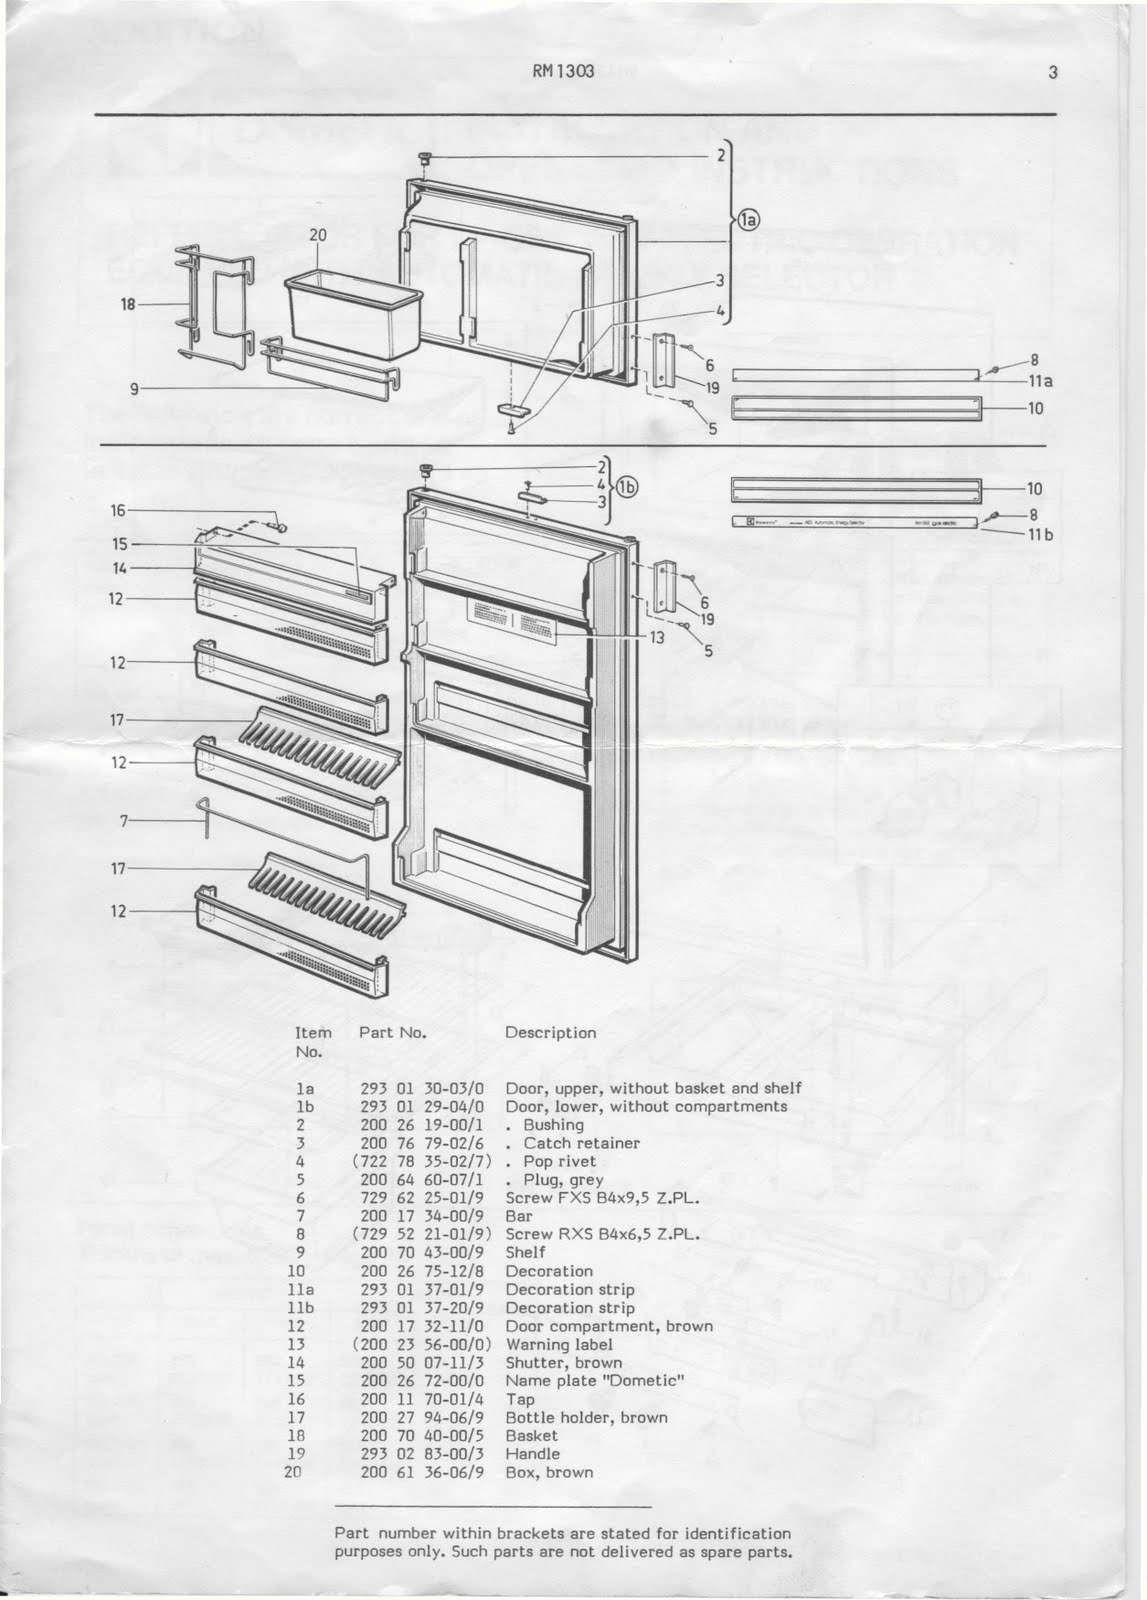 Rv Fridge Wiring Diagram Plant Leaf Cross Section 1983 Fleetwood Pace Arrow Owners Manuals Dometic